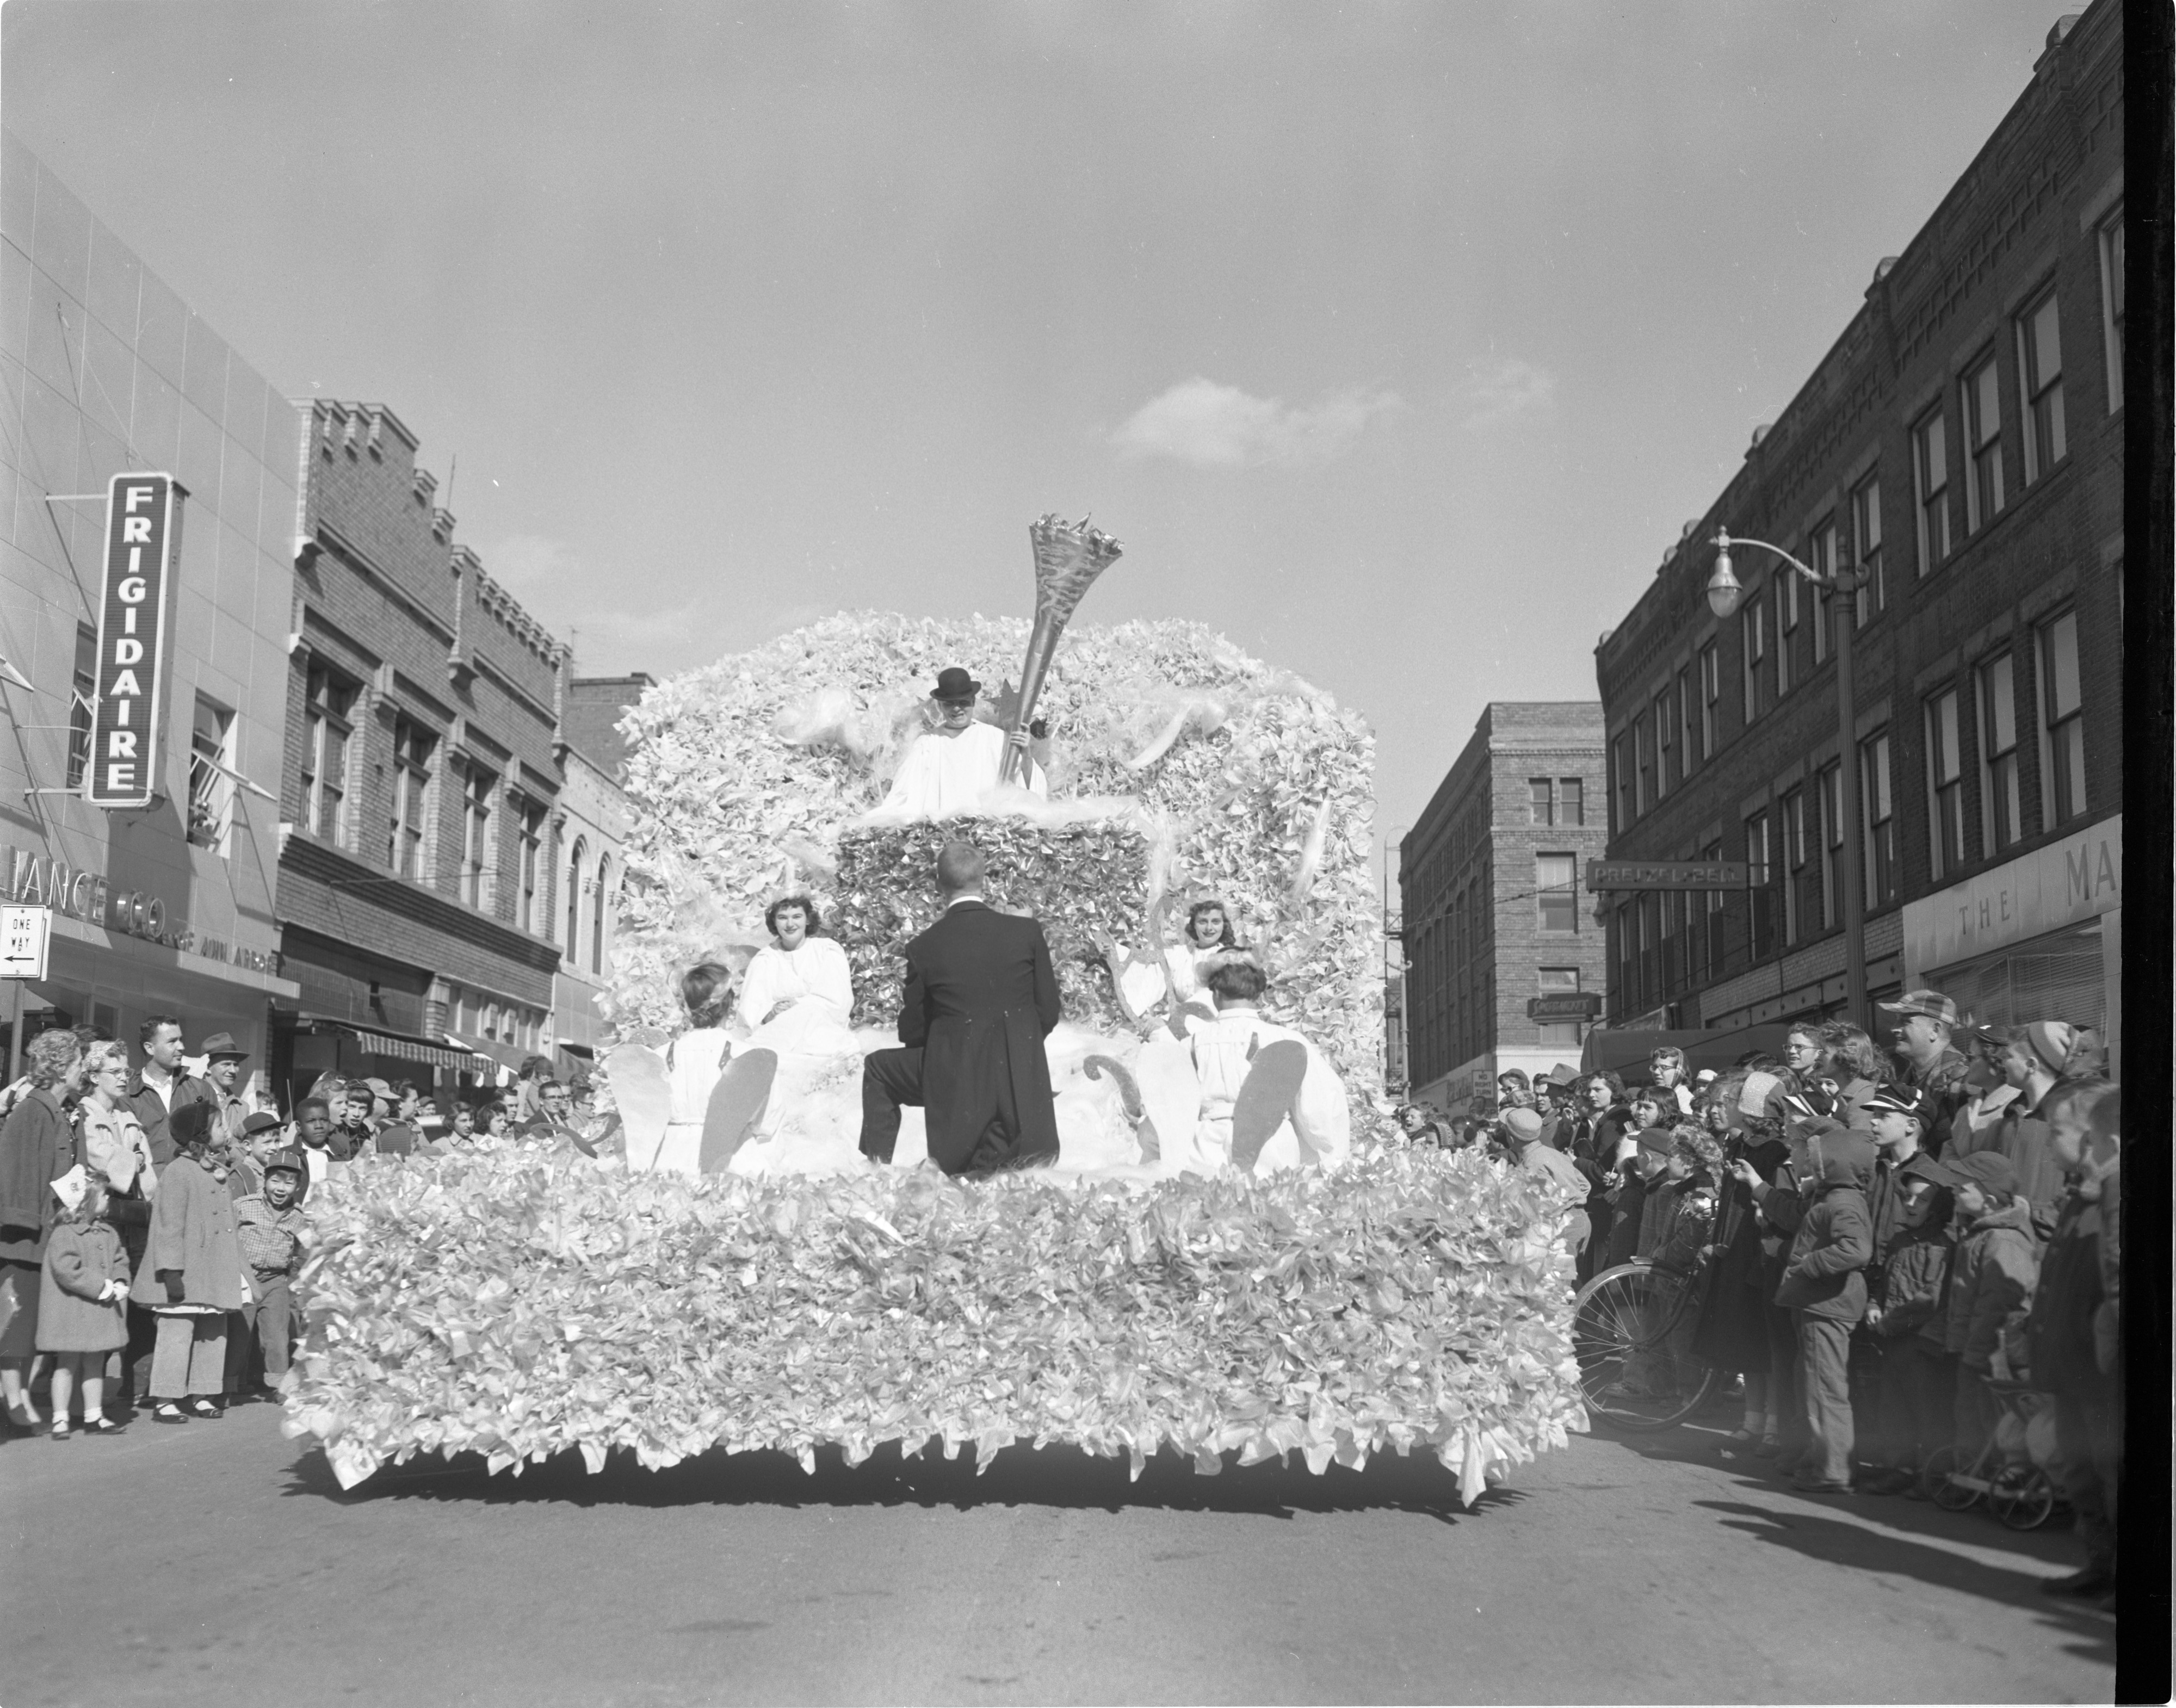 Blow, Gabriel, Blow - Angell & Taylor,  Michigras Parade, April 1956 image